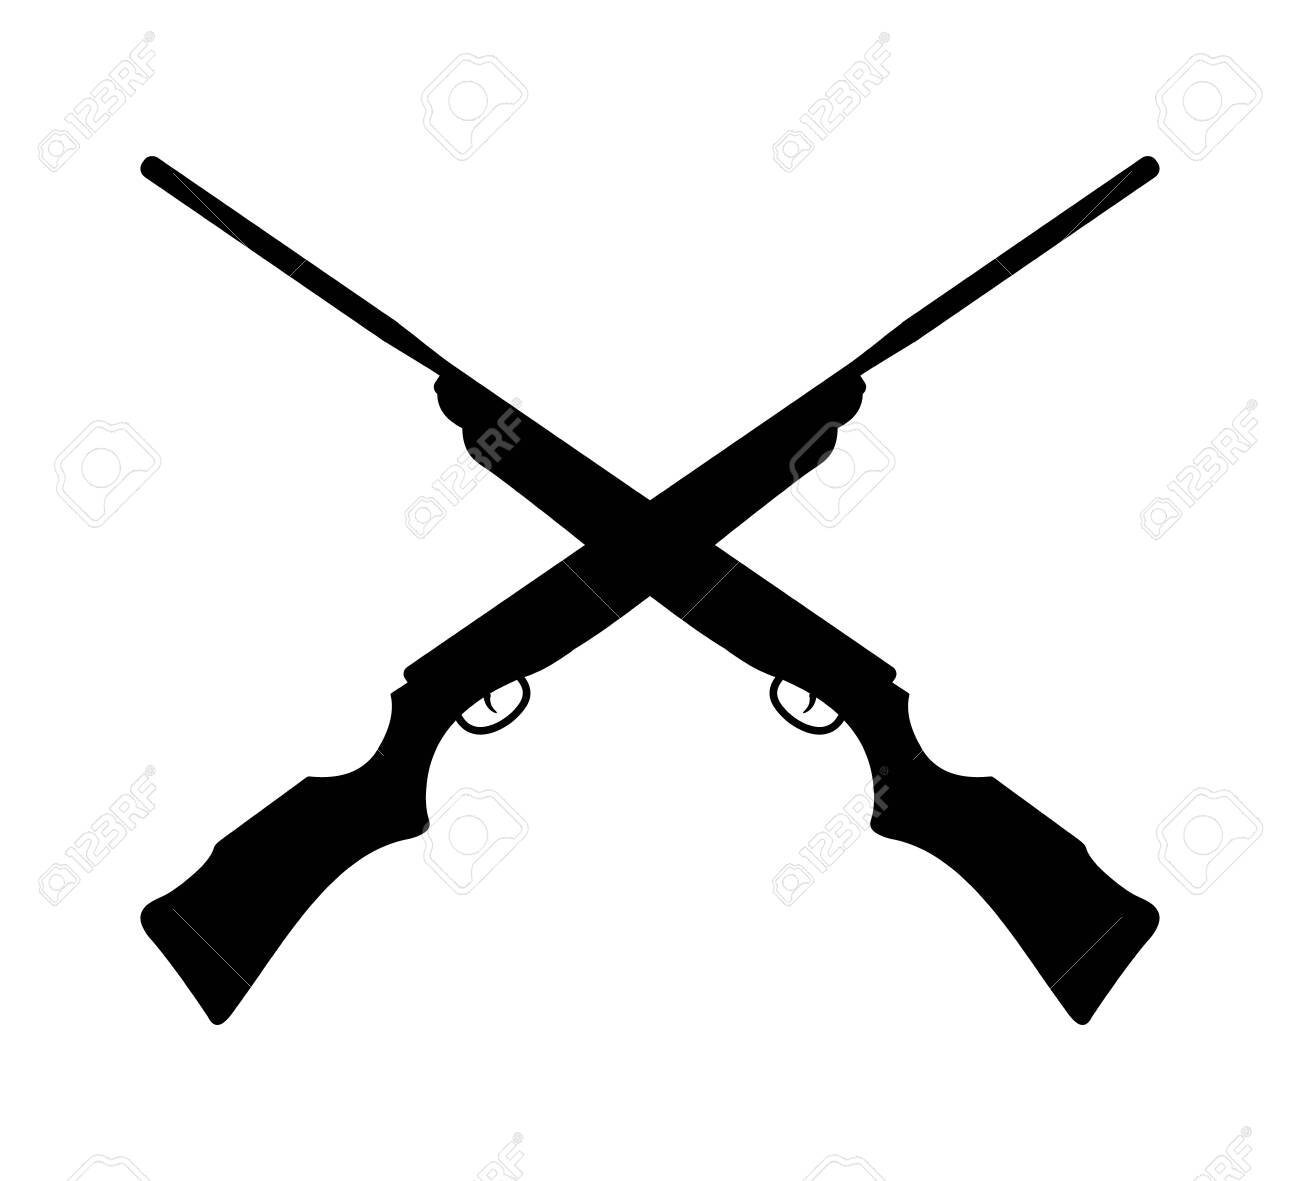 crossed rifle gun silhouette logo design template inspiration for hunting outdoor extreme sport - 126602656